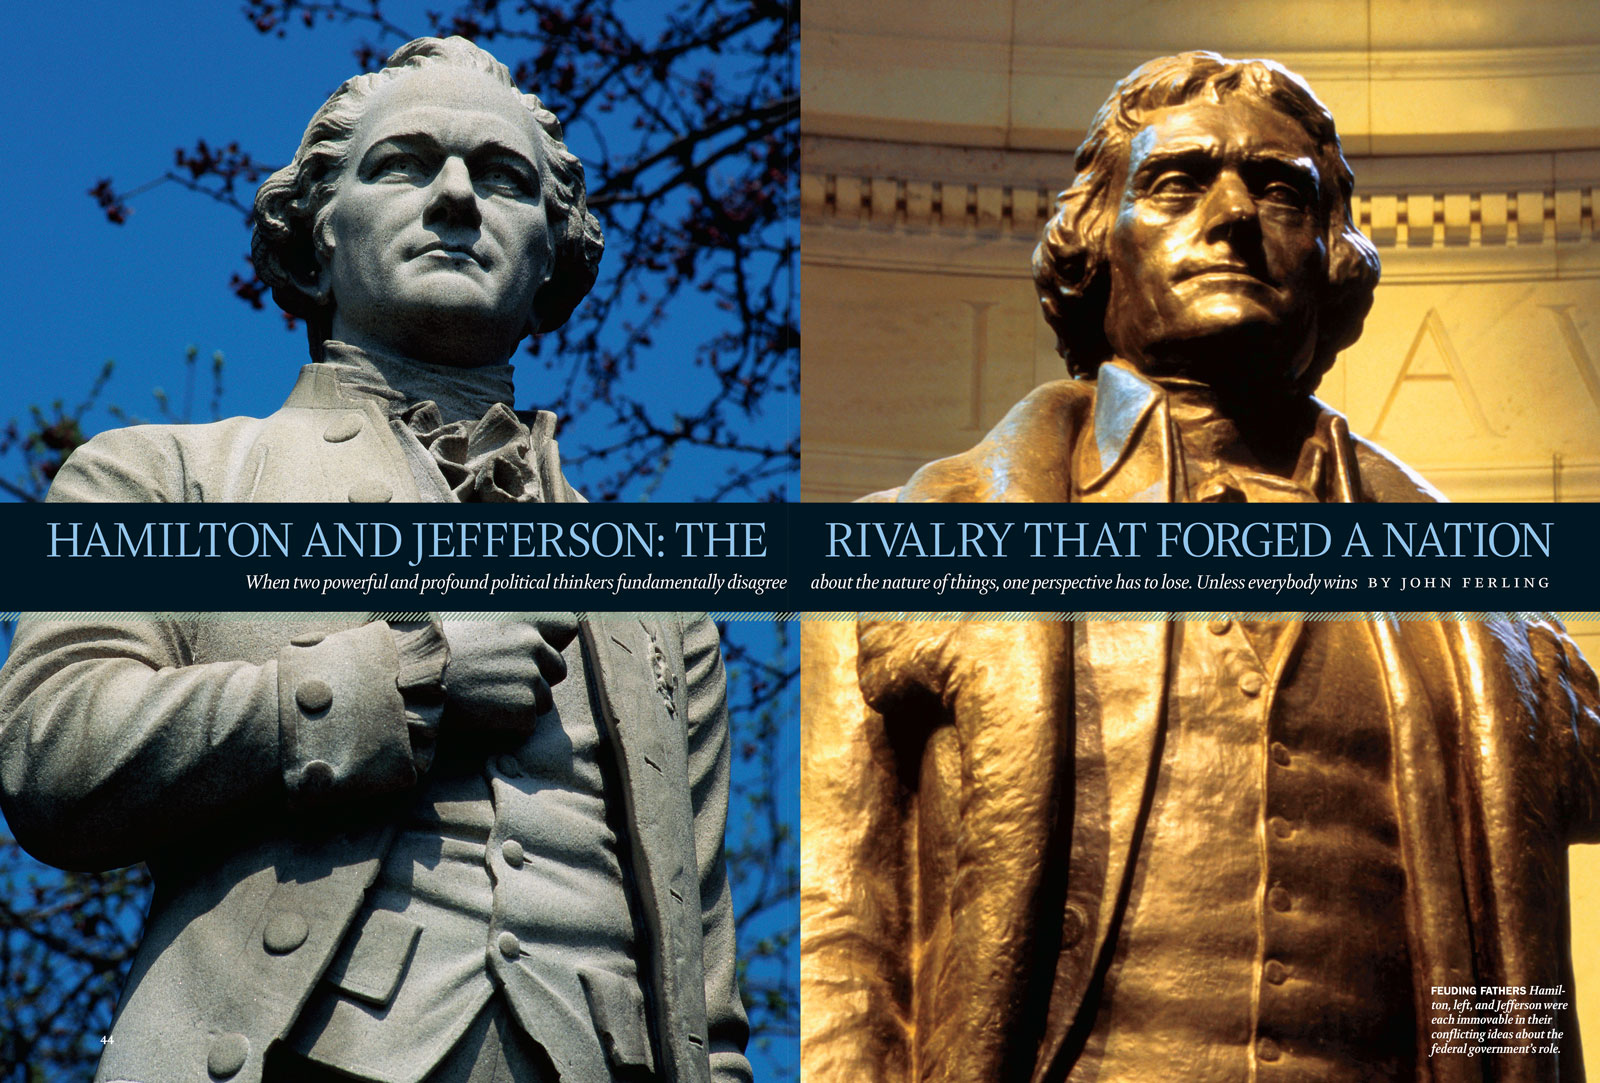 TIME_BK_HAMILTON-jefferson.jpg